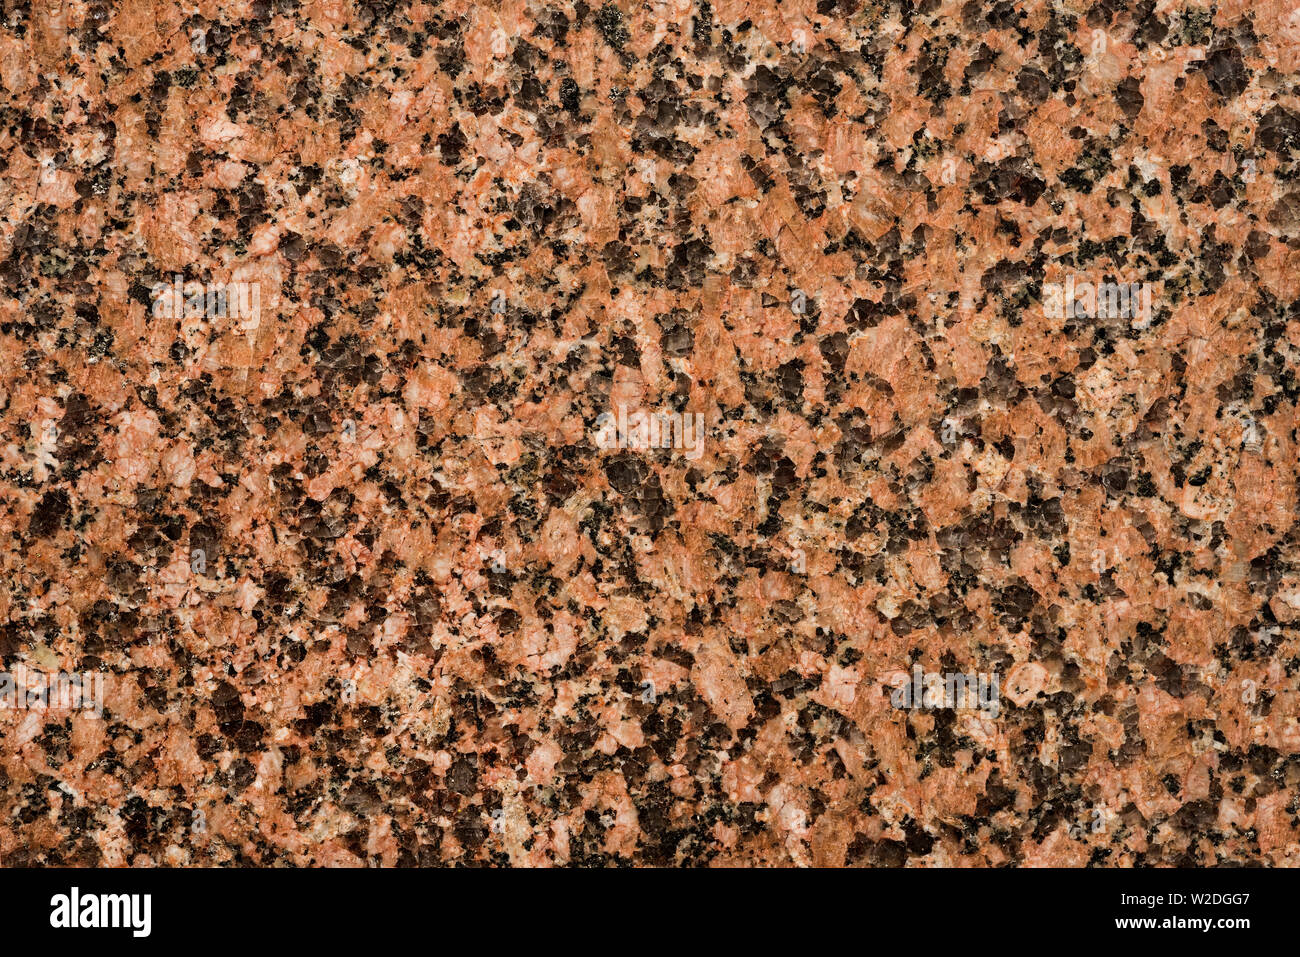 Close up of the flecked surface pattern of polished granite slab. - Stock Image